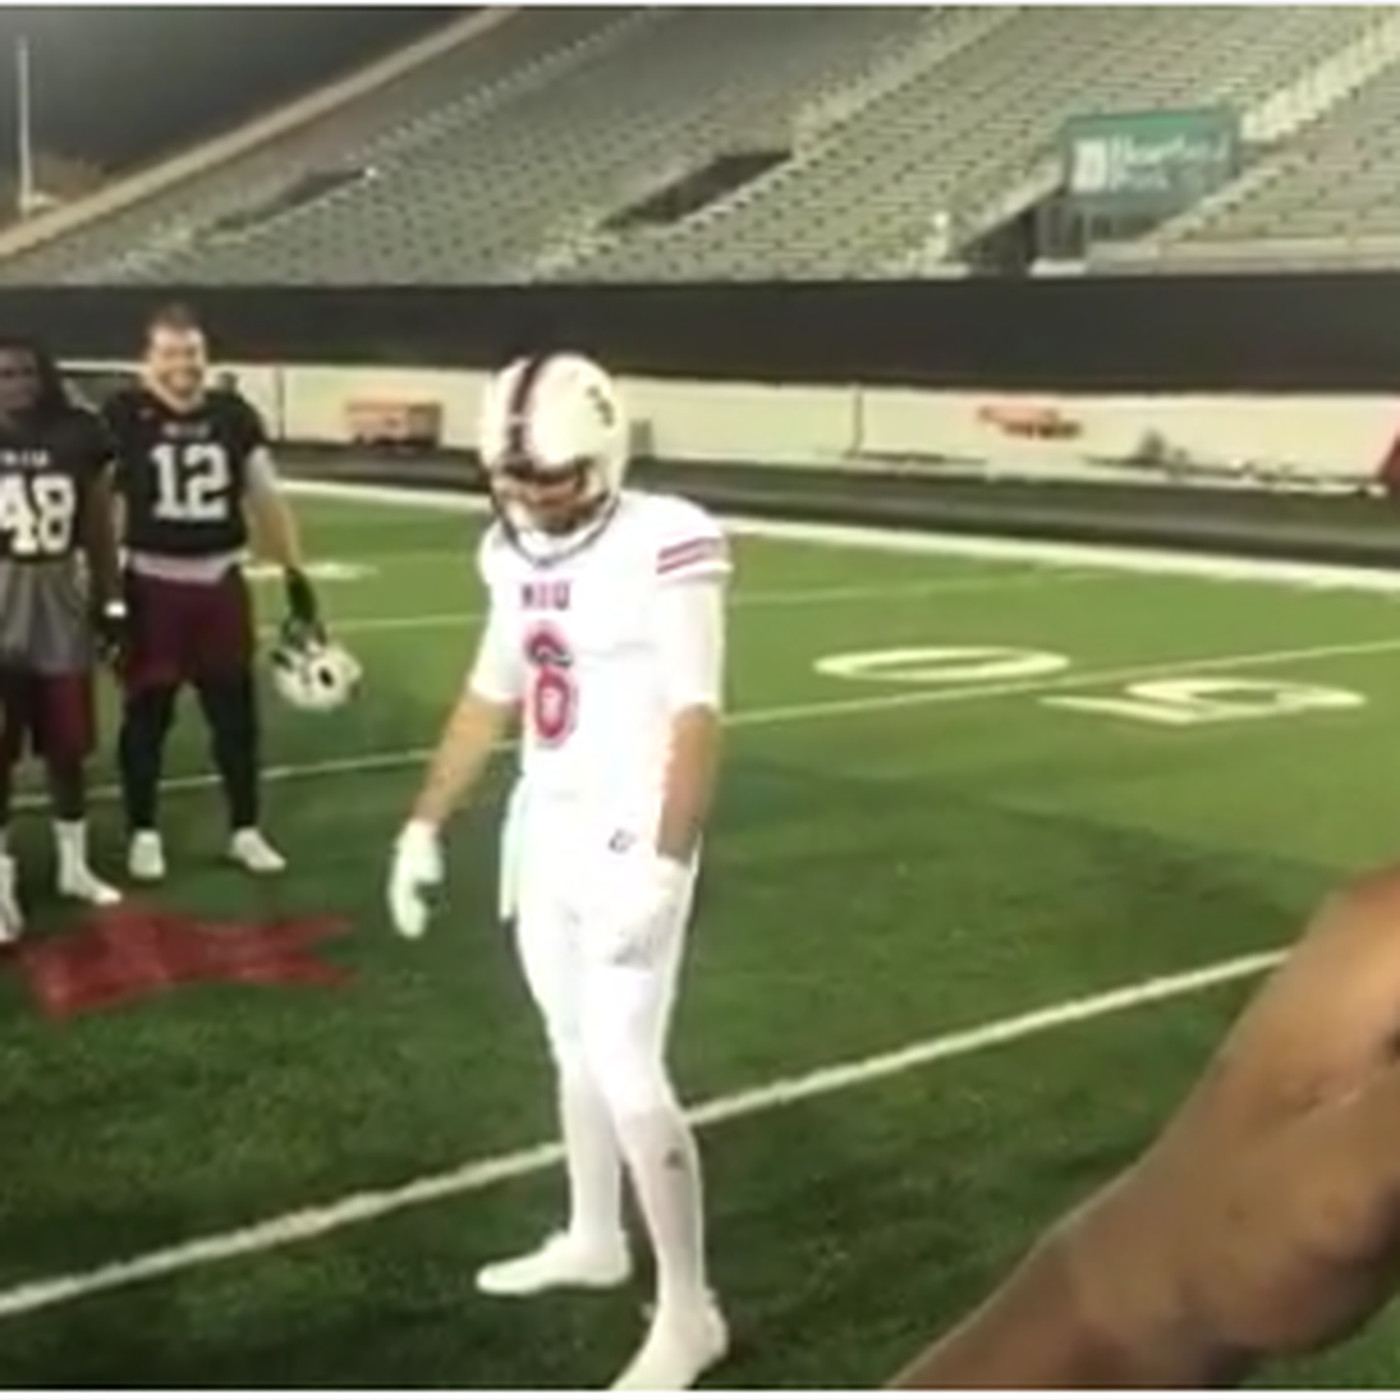 6d6dfb175 NIU debuts new alternate uniform ahead of game vs. Nebraska - Hustle ...